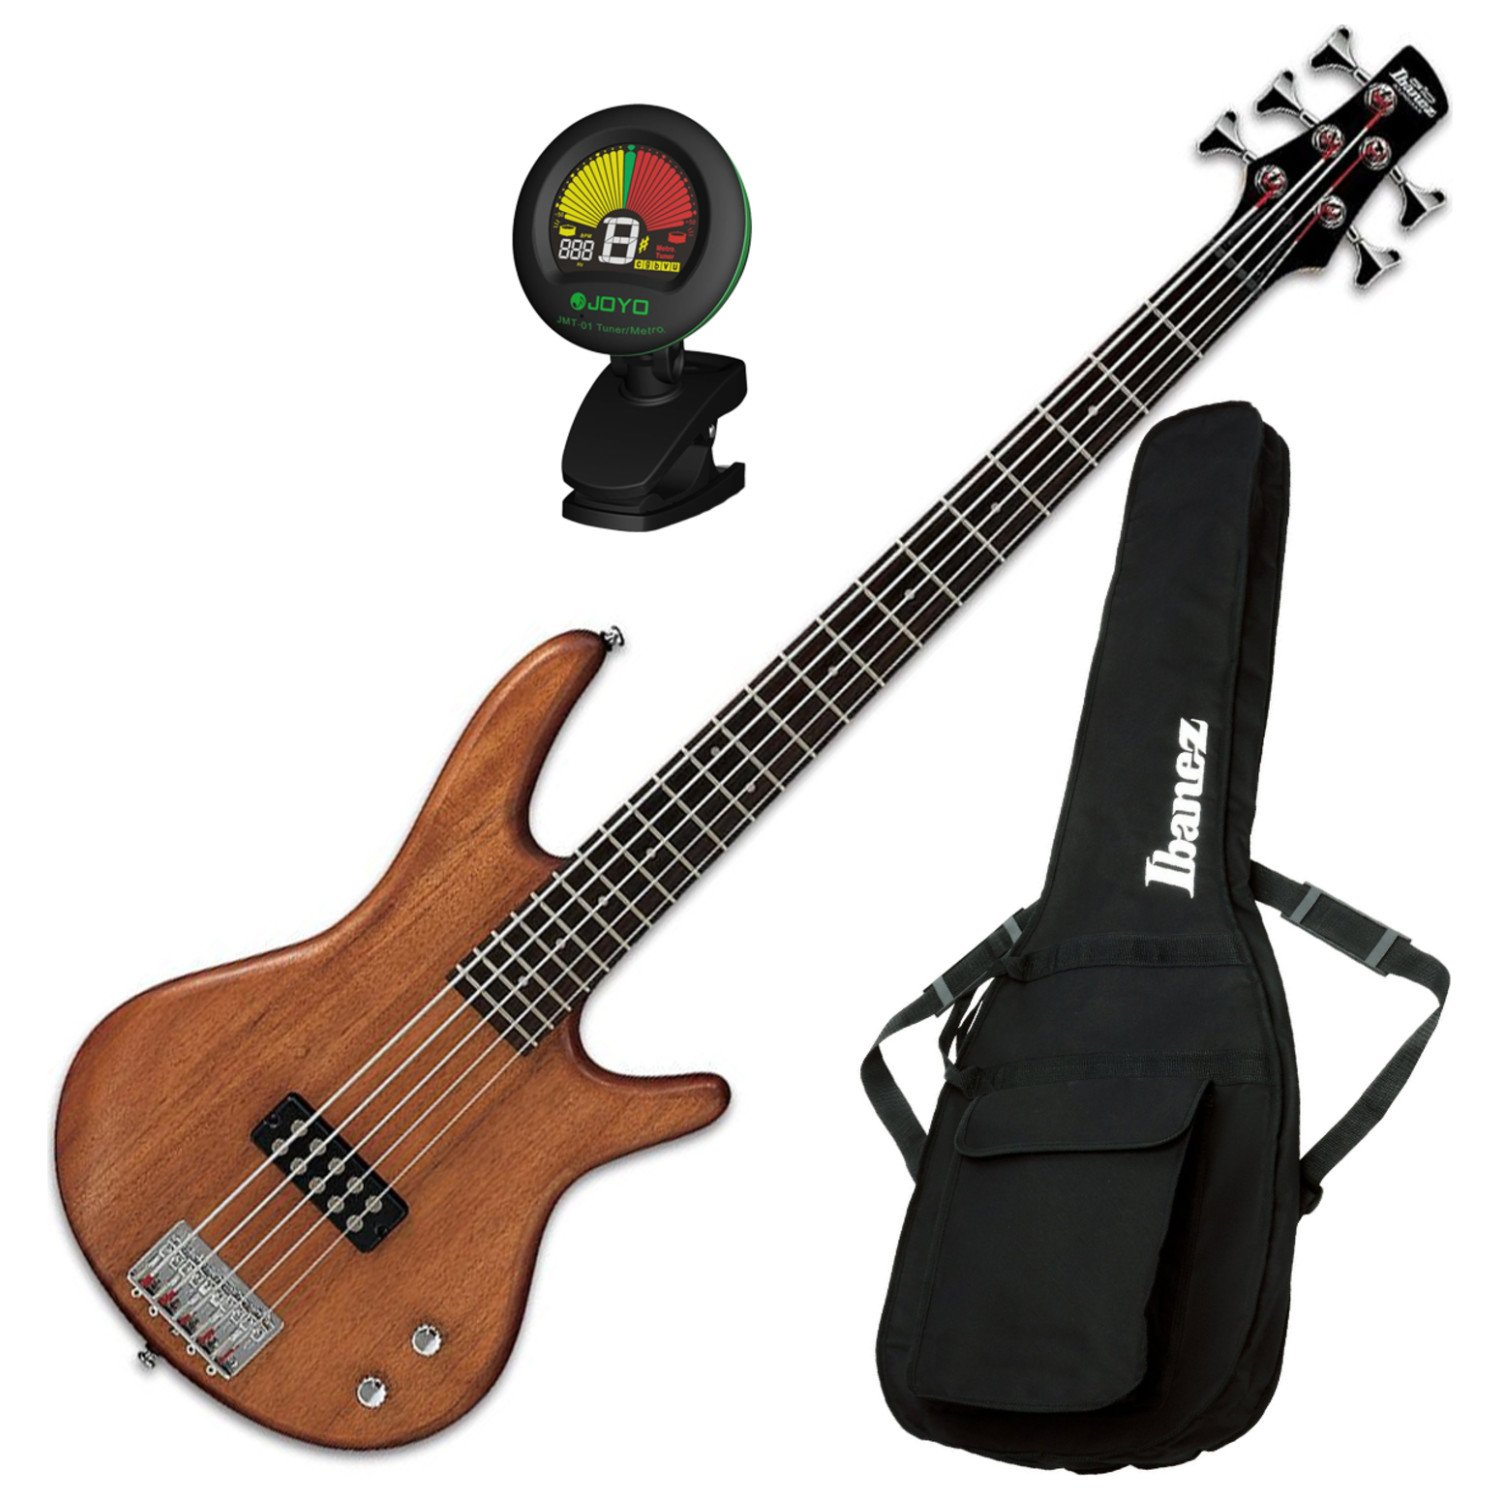 Ibanez GSR105EXMOL 5-String Electric Bass (Natural Oil) w/ Gig Bag and Tuner